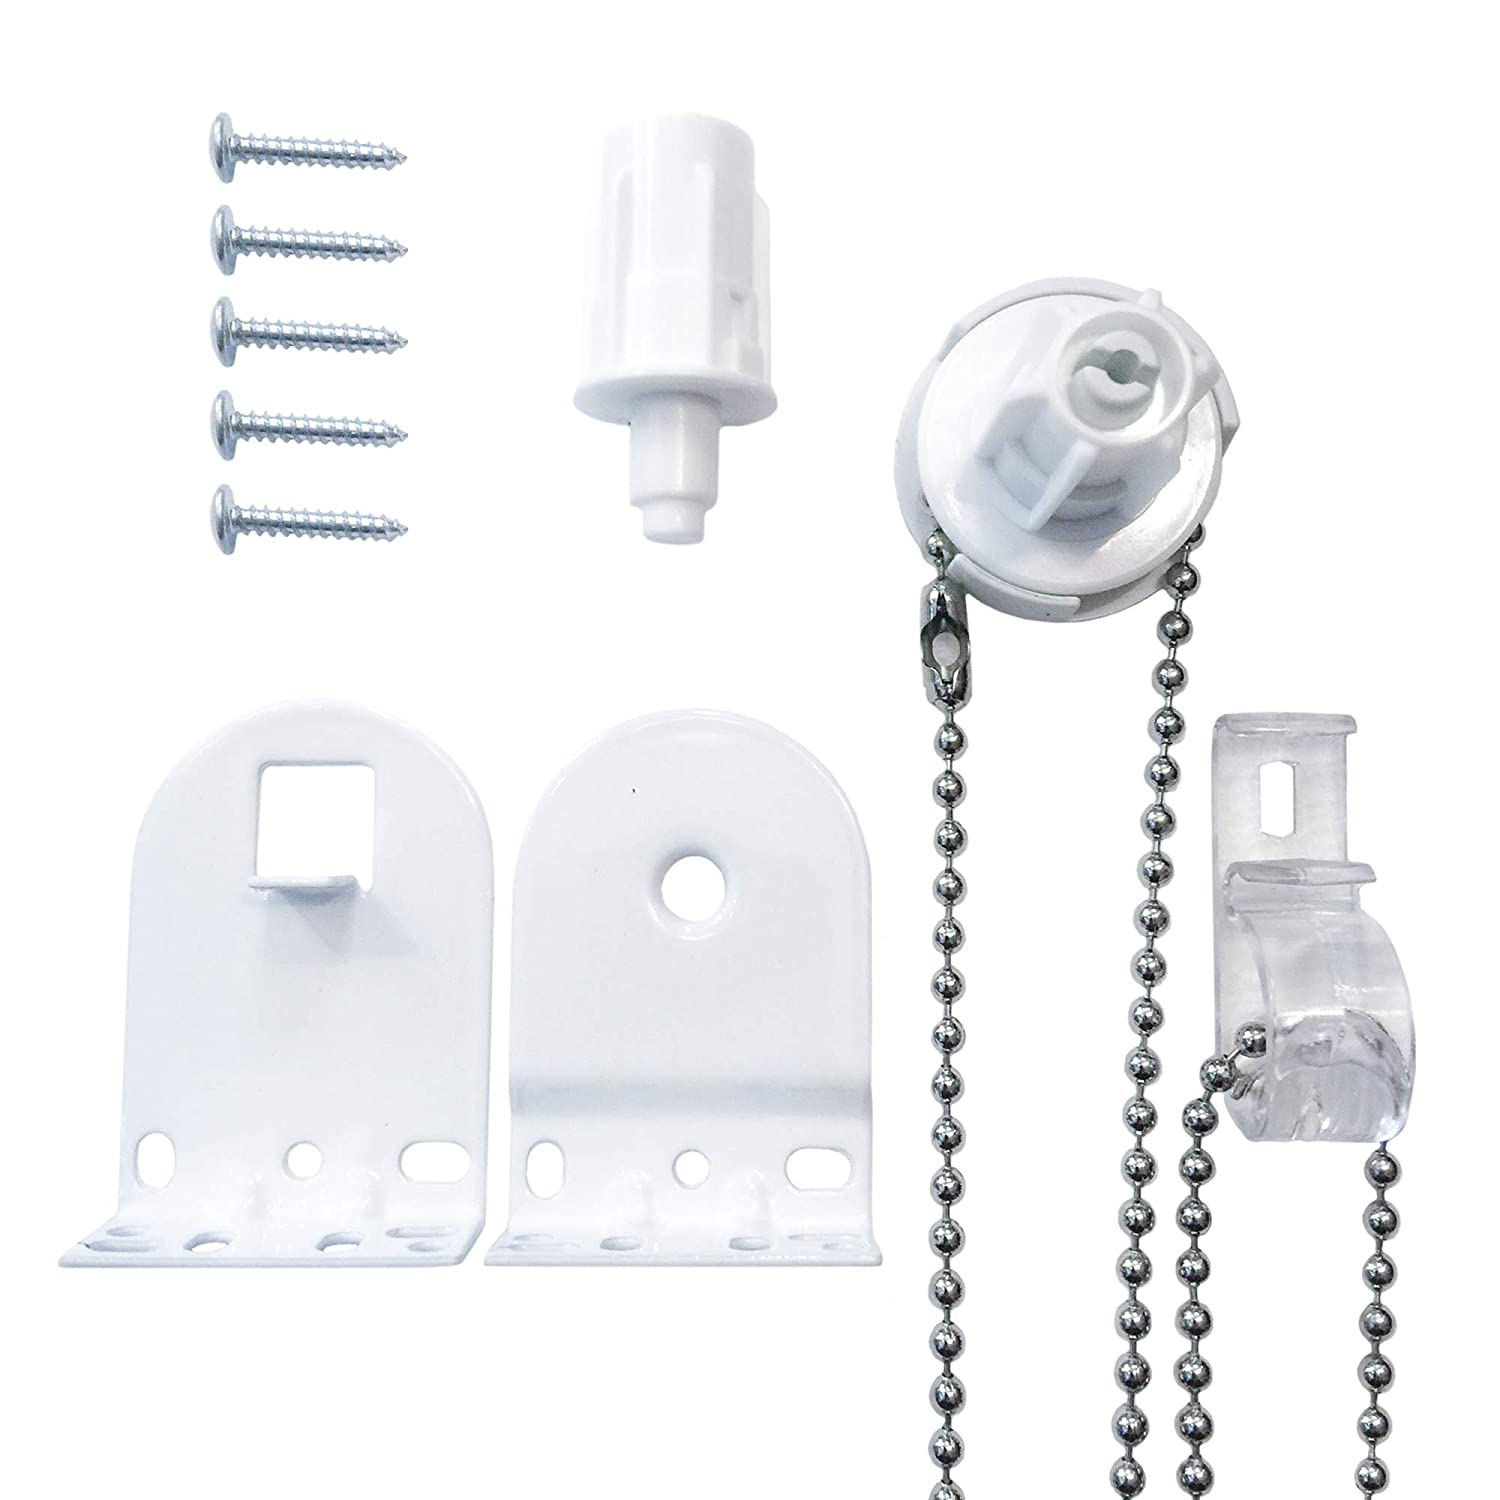 25mm Quality Metal Bracket Upgrade Roller Blind Fittings Spare Kit White Heavy Duty Furnished RB-109